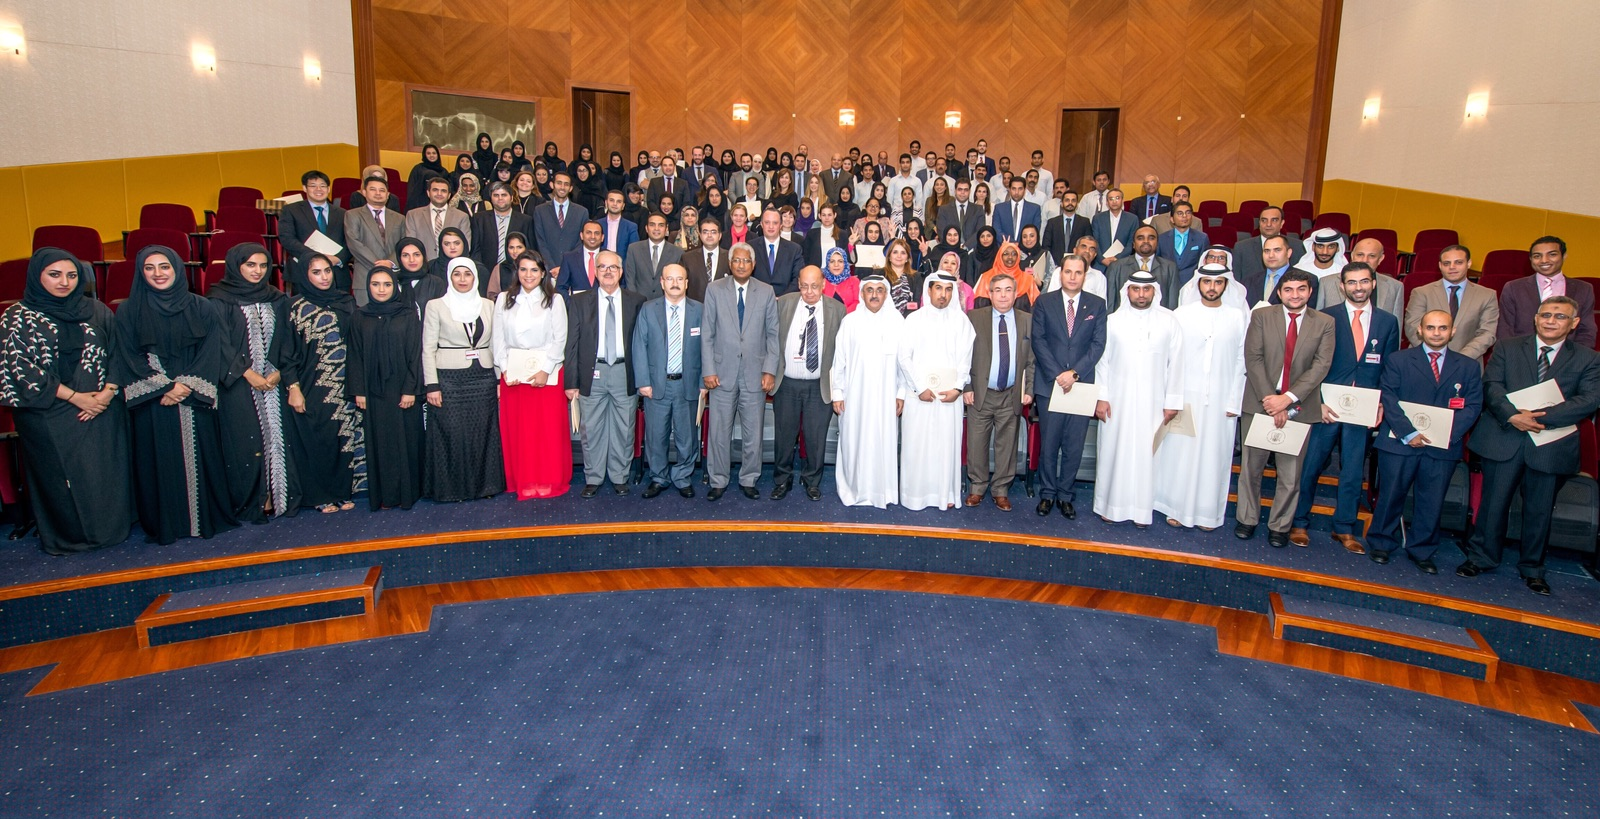 Legal Affairs Department Employees Honoured at Annual Ceremony - Monday 18/01/2016